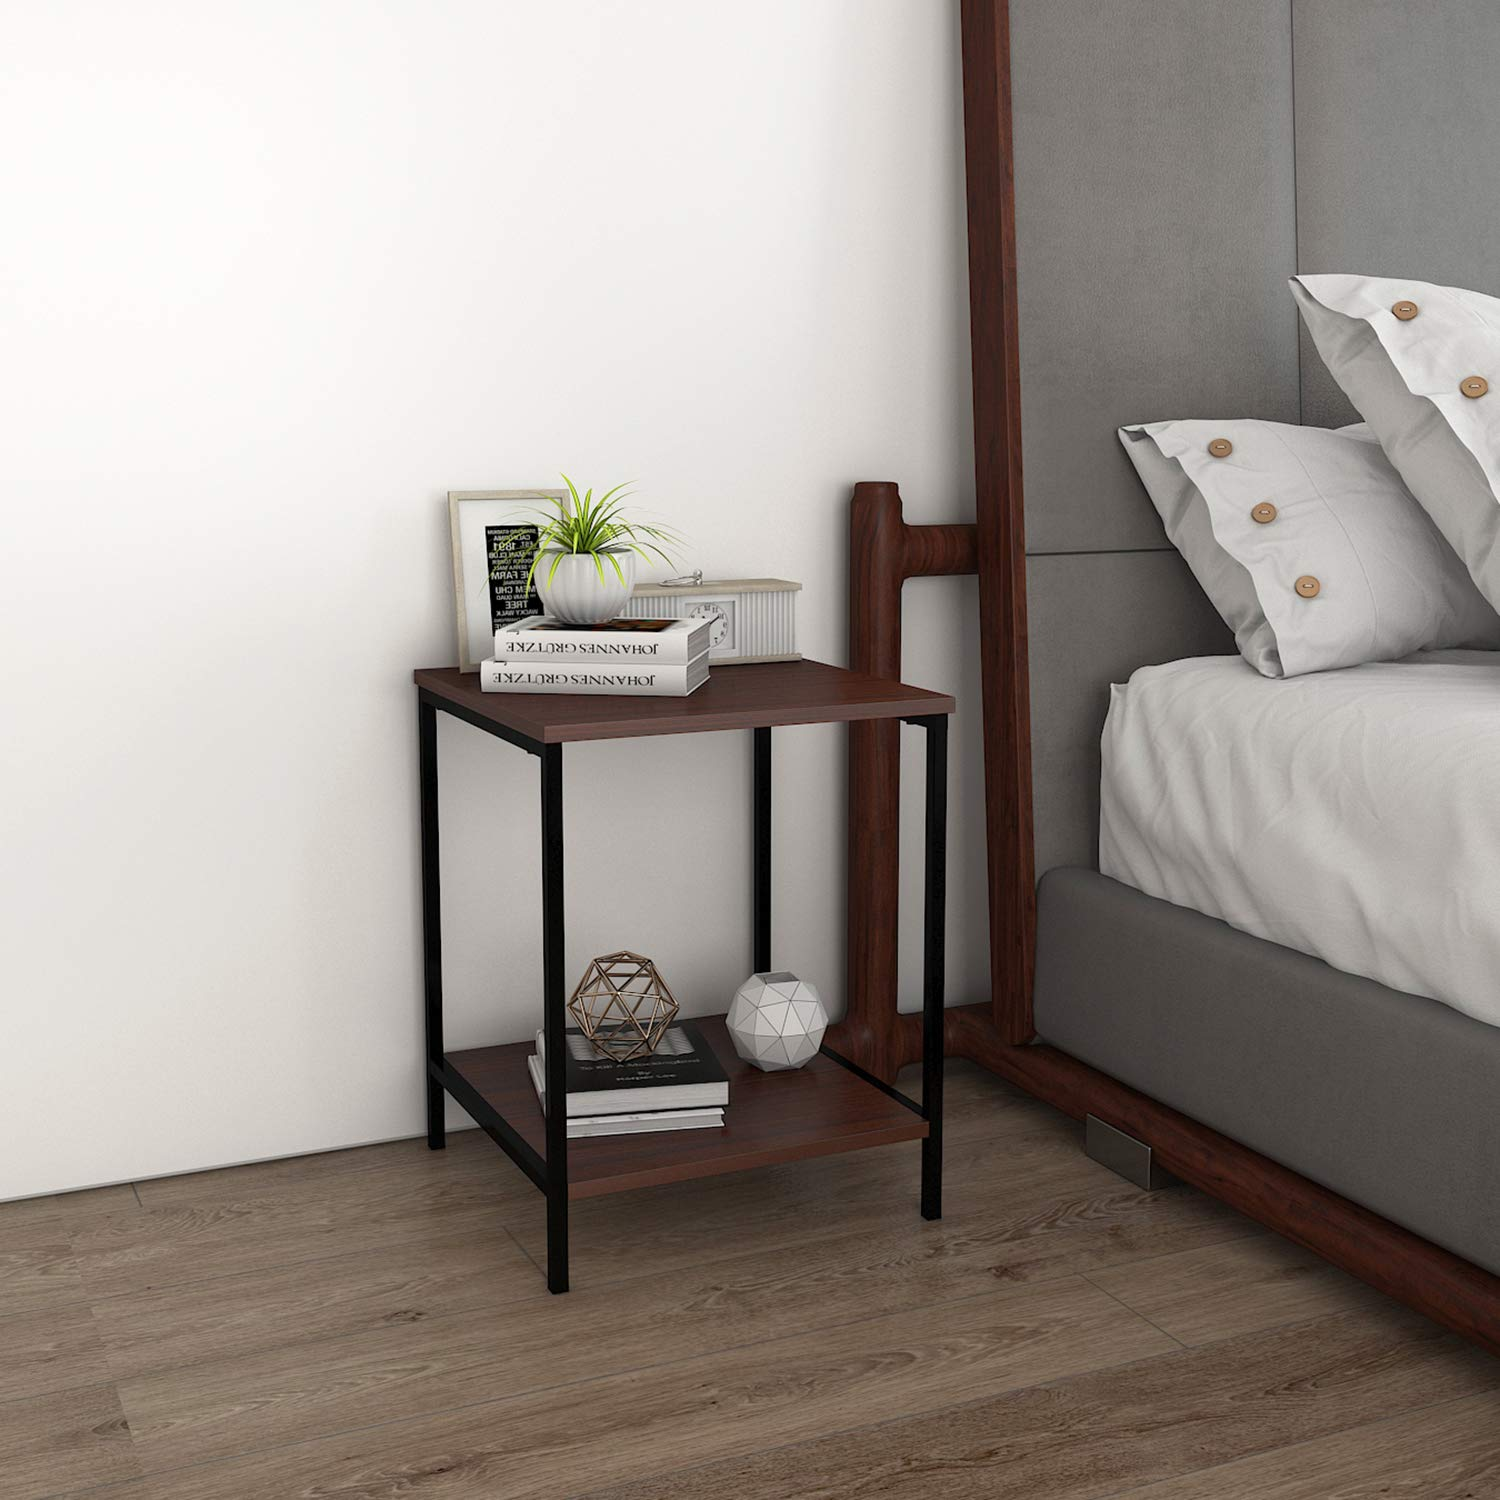 Amazon.com: Lifewit Small 2-Tier Side Table End Table Beside Sofa in ...